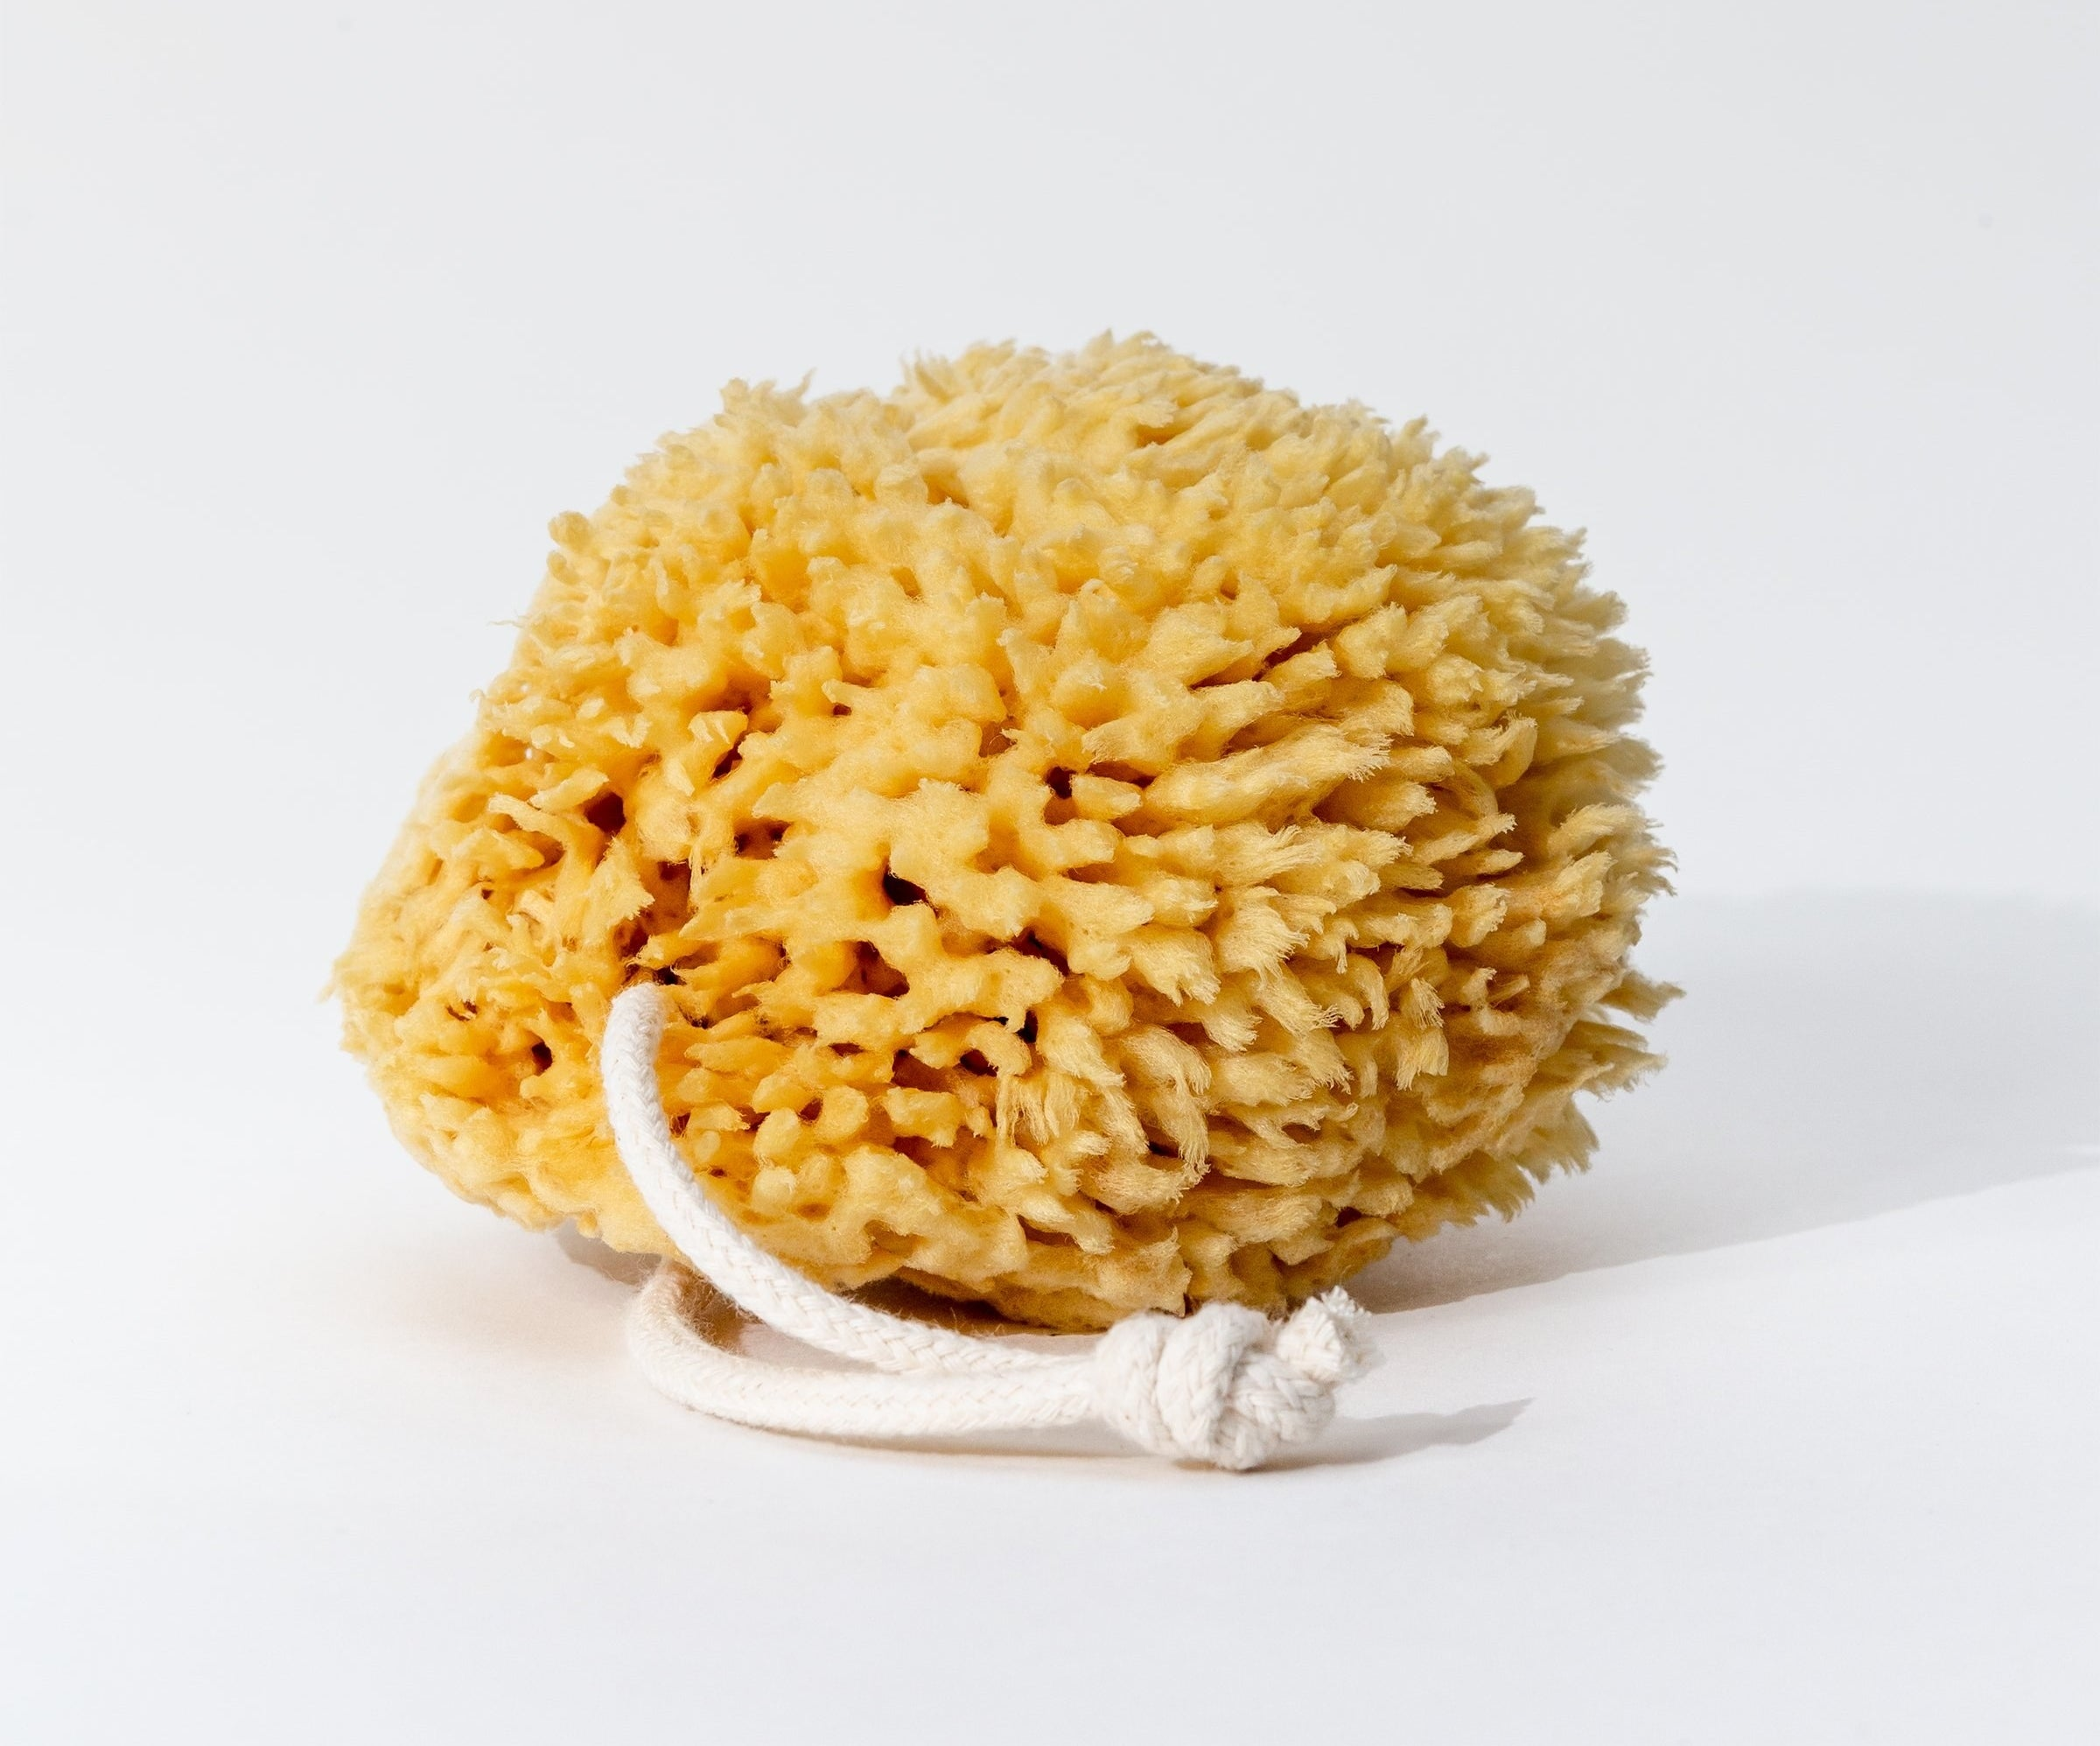 The natural sea sponge which has a rope so it can be hung to dry